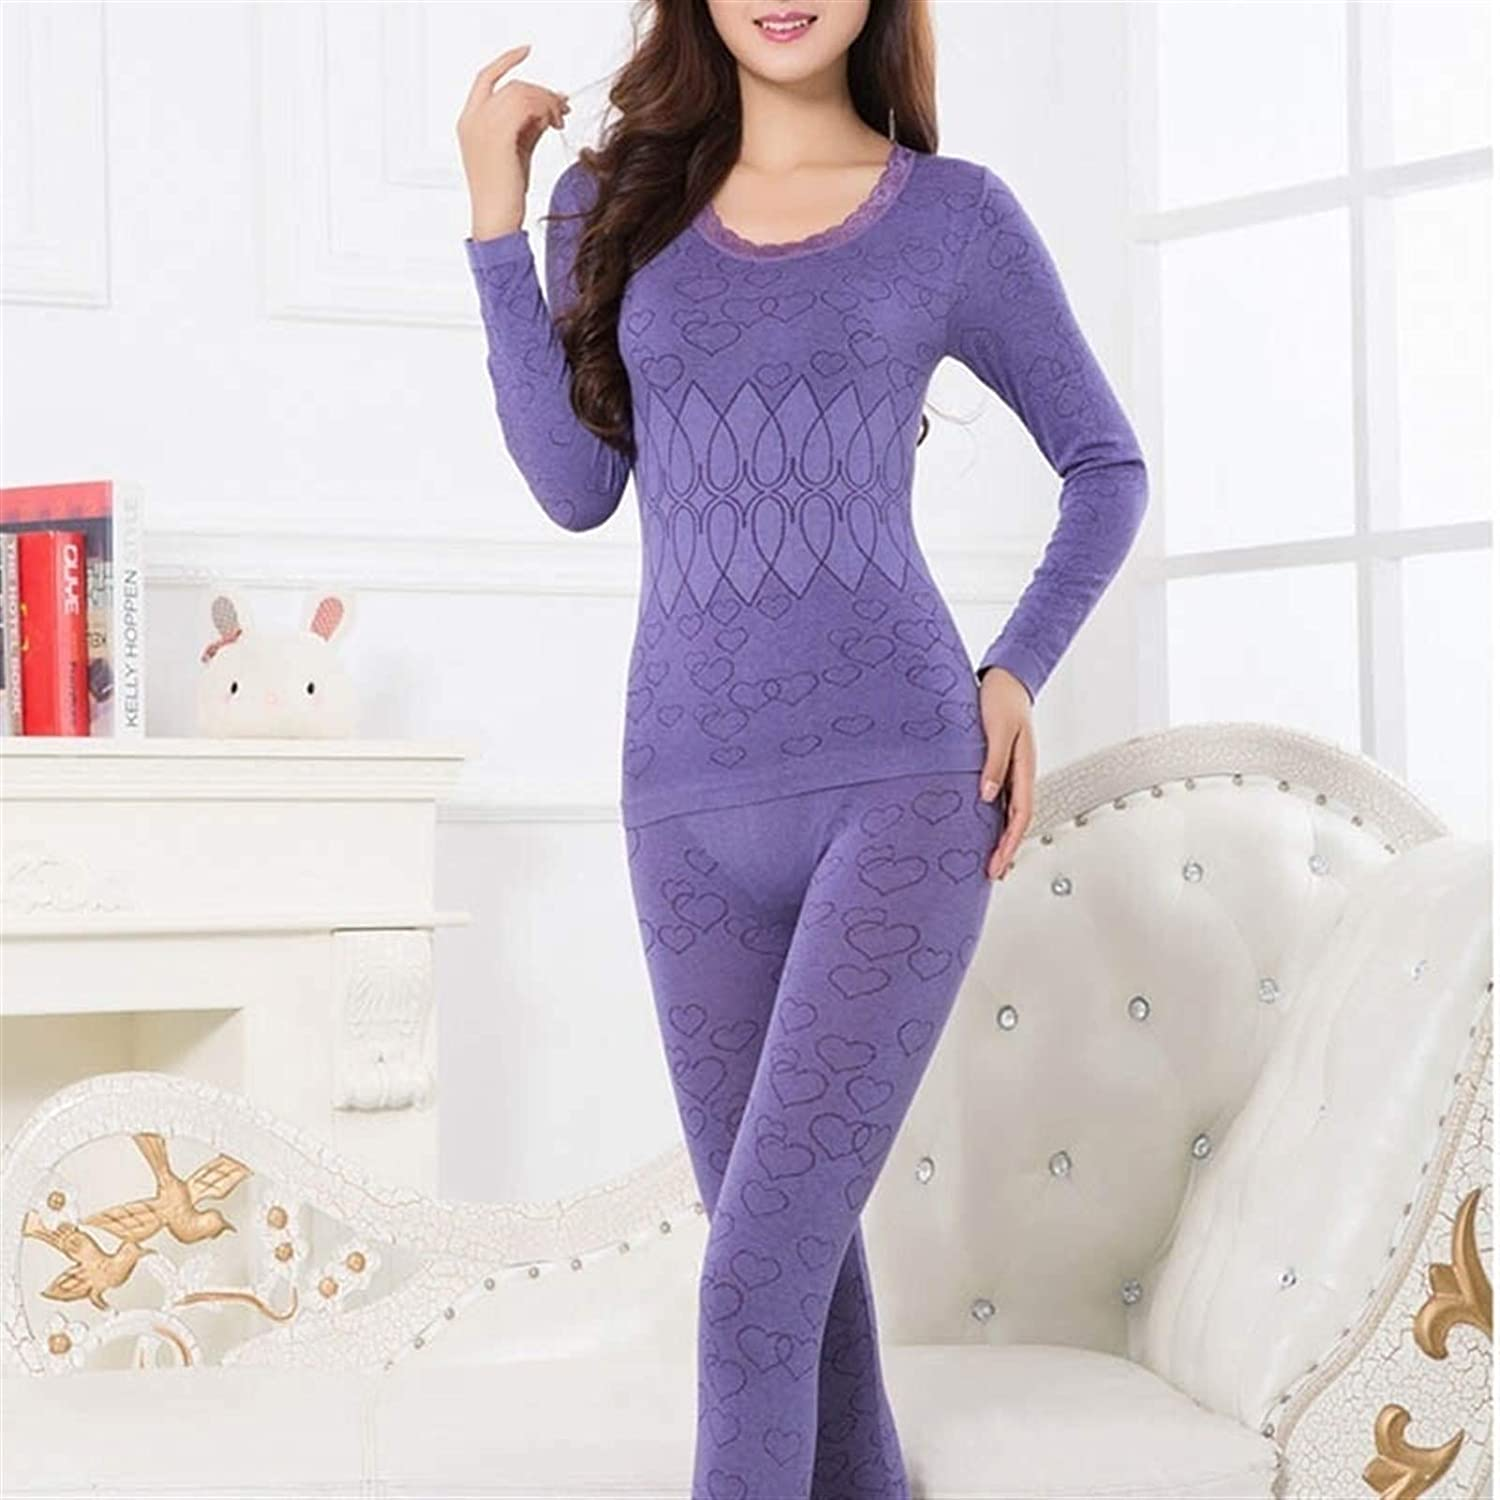 DZHT Women Warm Thermal Underwear Woman Long Sleeve Thermal Clothing Underwears Sets (Color : Purple, Size : One Size)